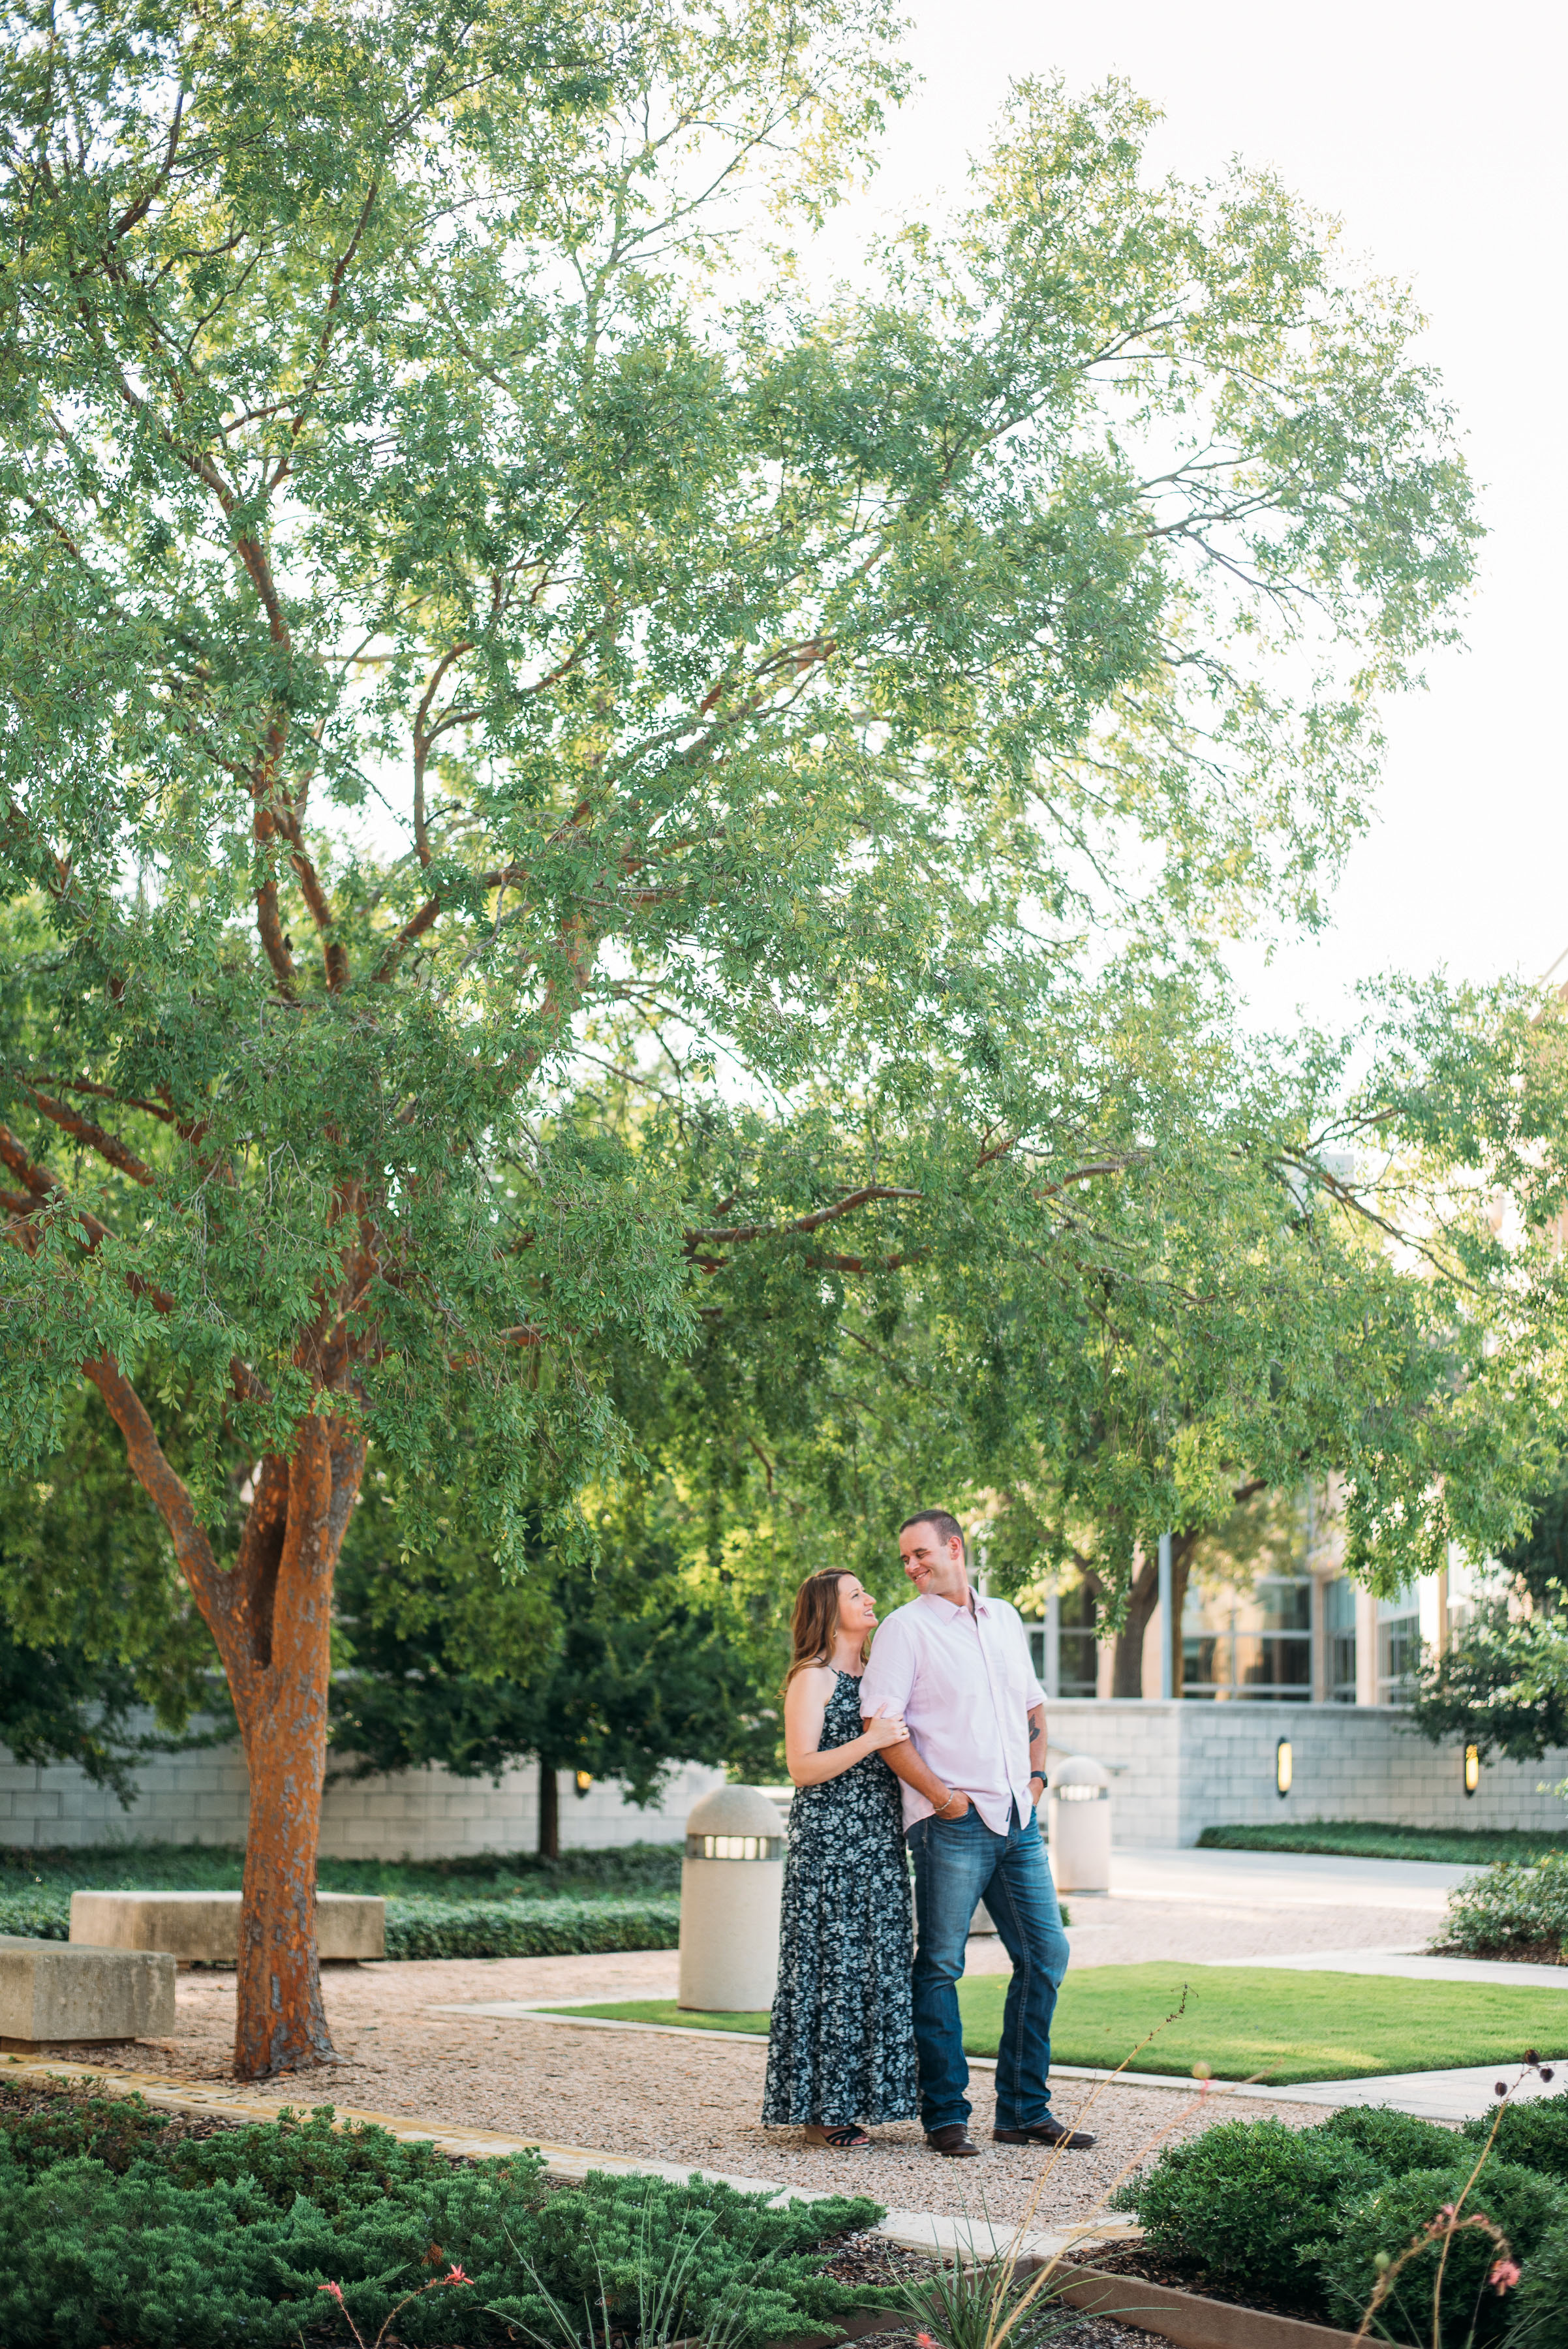 George-Bush-Library-Texas-A&M-University-Engagement-College-Station-Wedding-Photographer-Videographer-San-Angel-Photo-Mark-Mike-Erica-Century-Tree-06.jpg